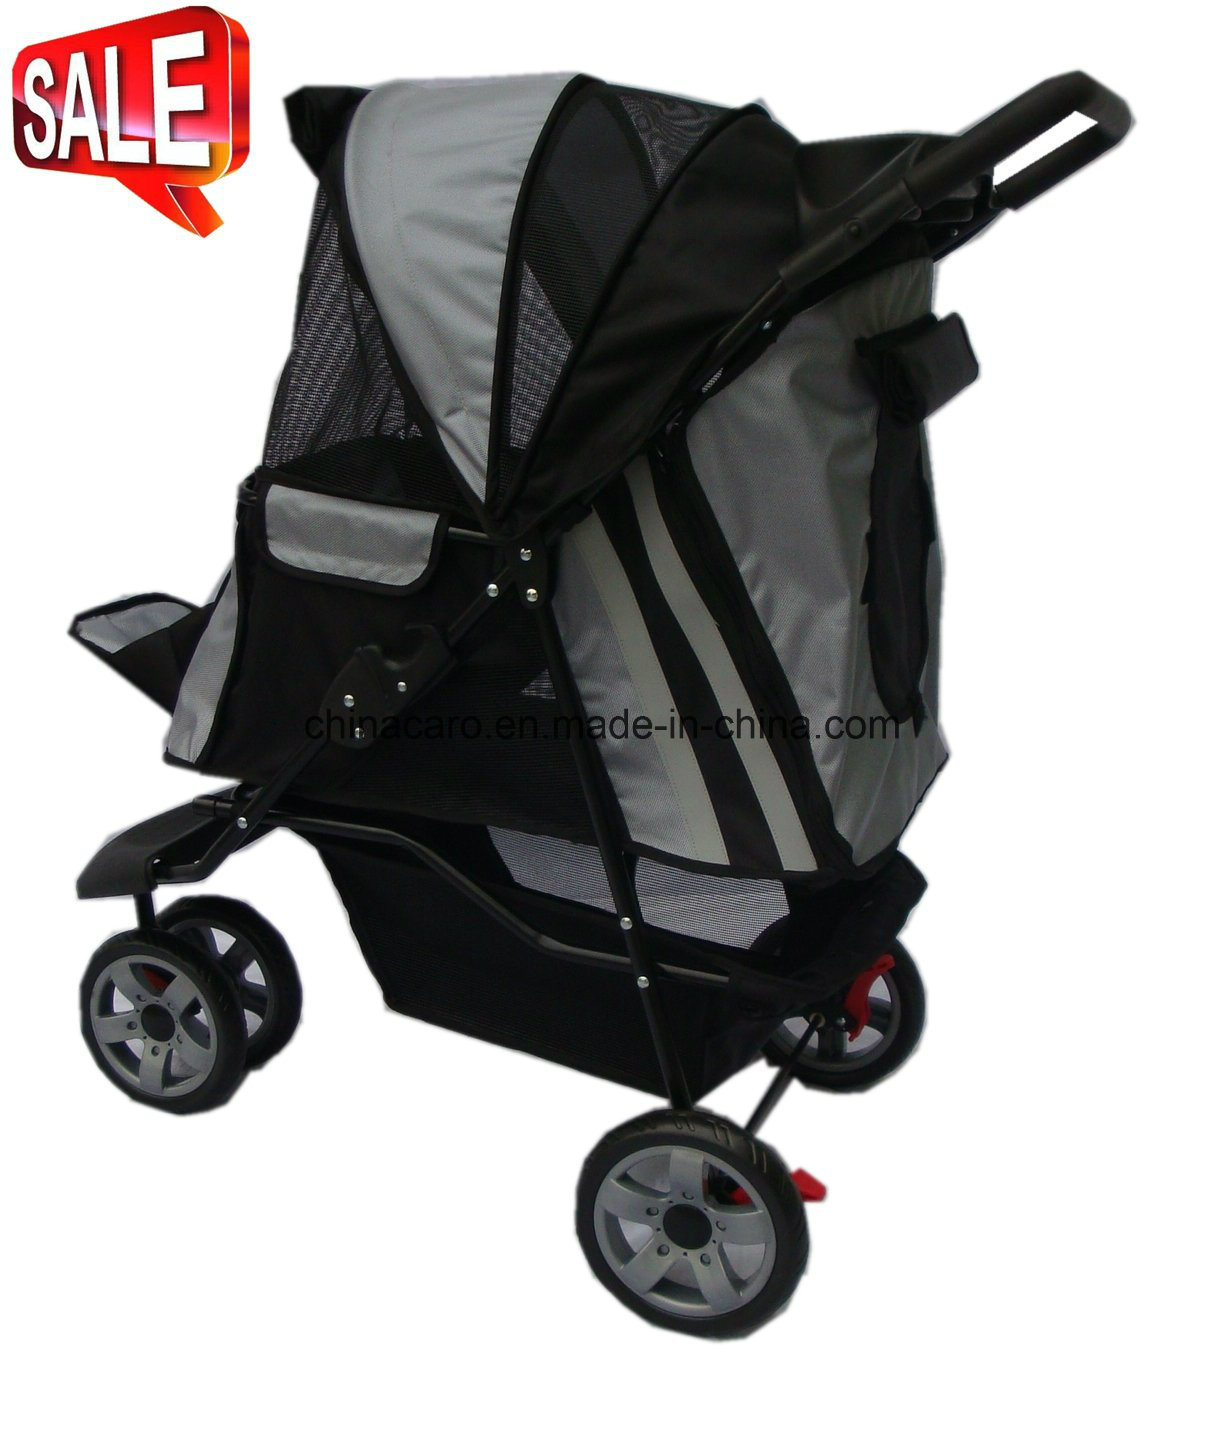 Pet Carrier On Sale Hot Item 3 Wheels Pet Carrier Stroller Dog Outdoor Travel Bb Ps02